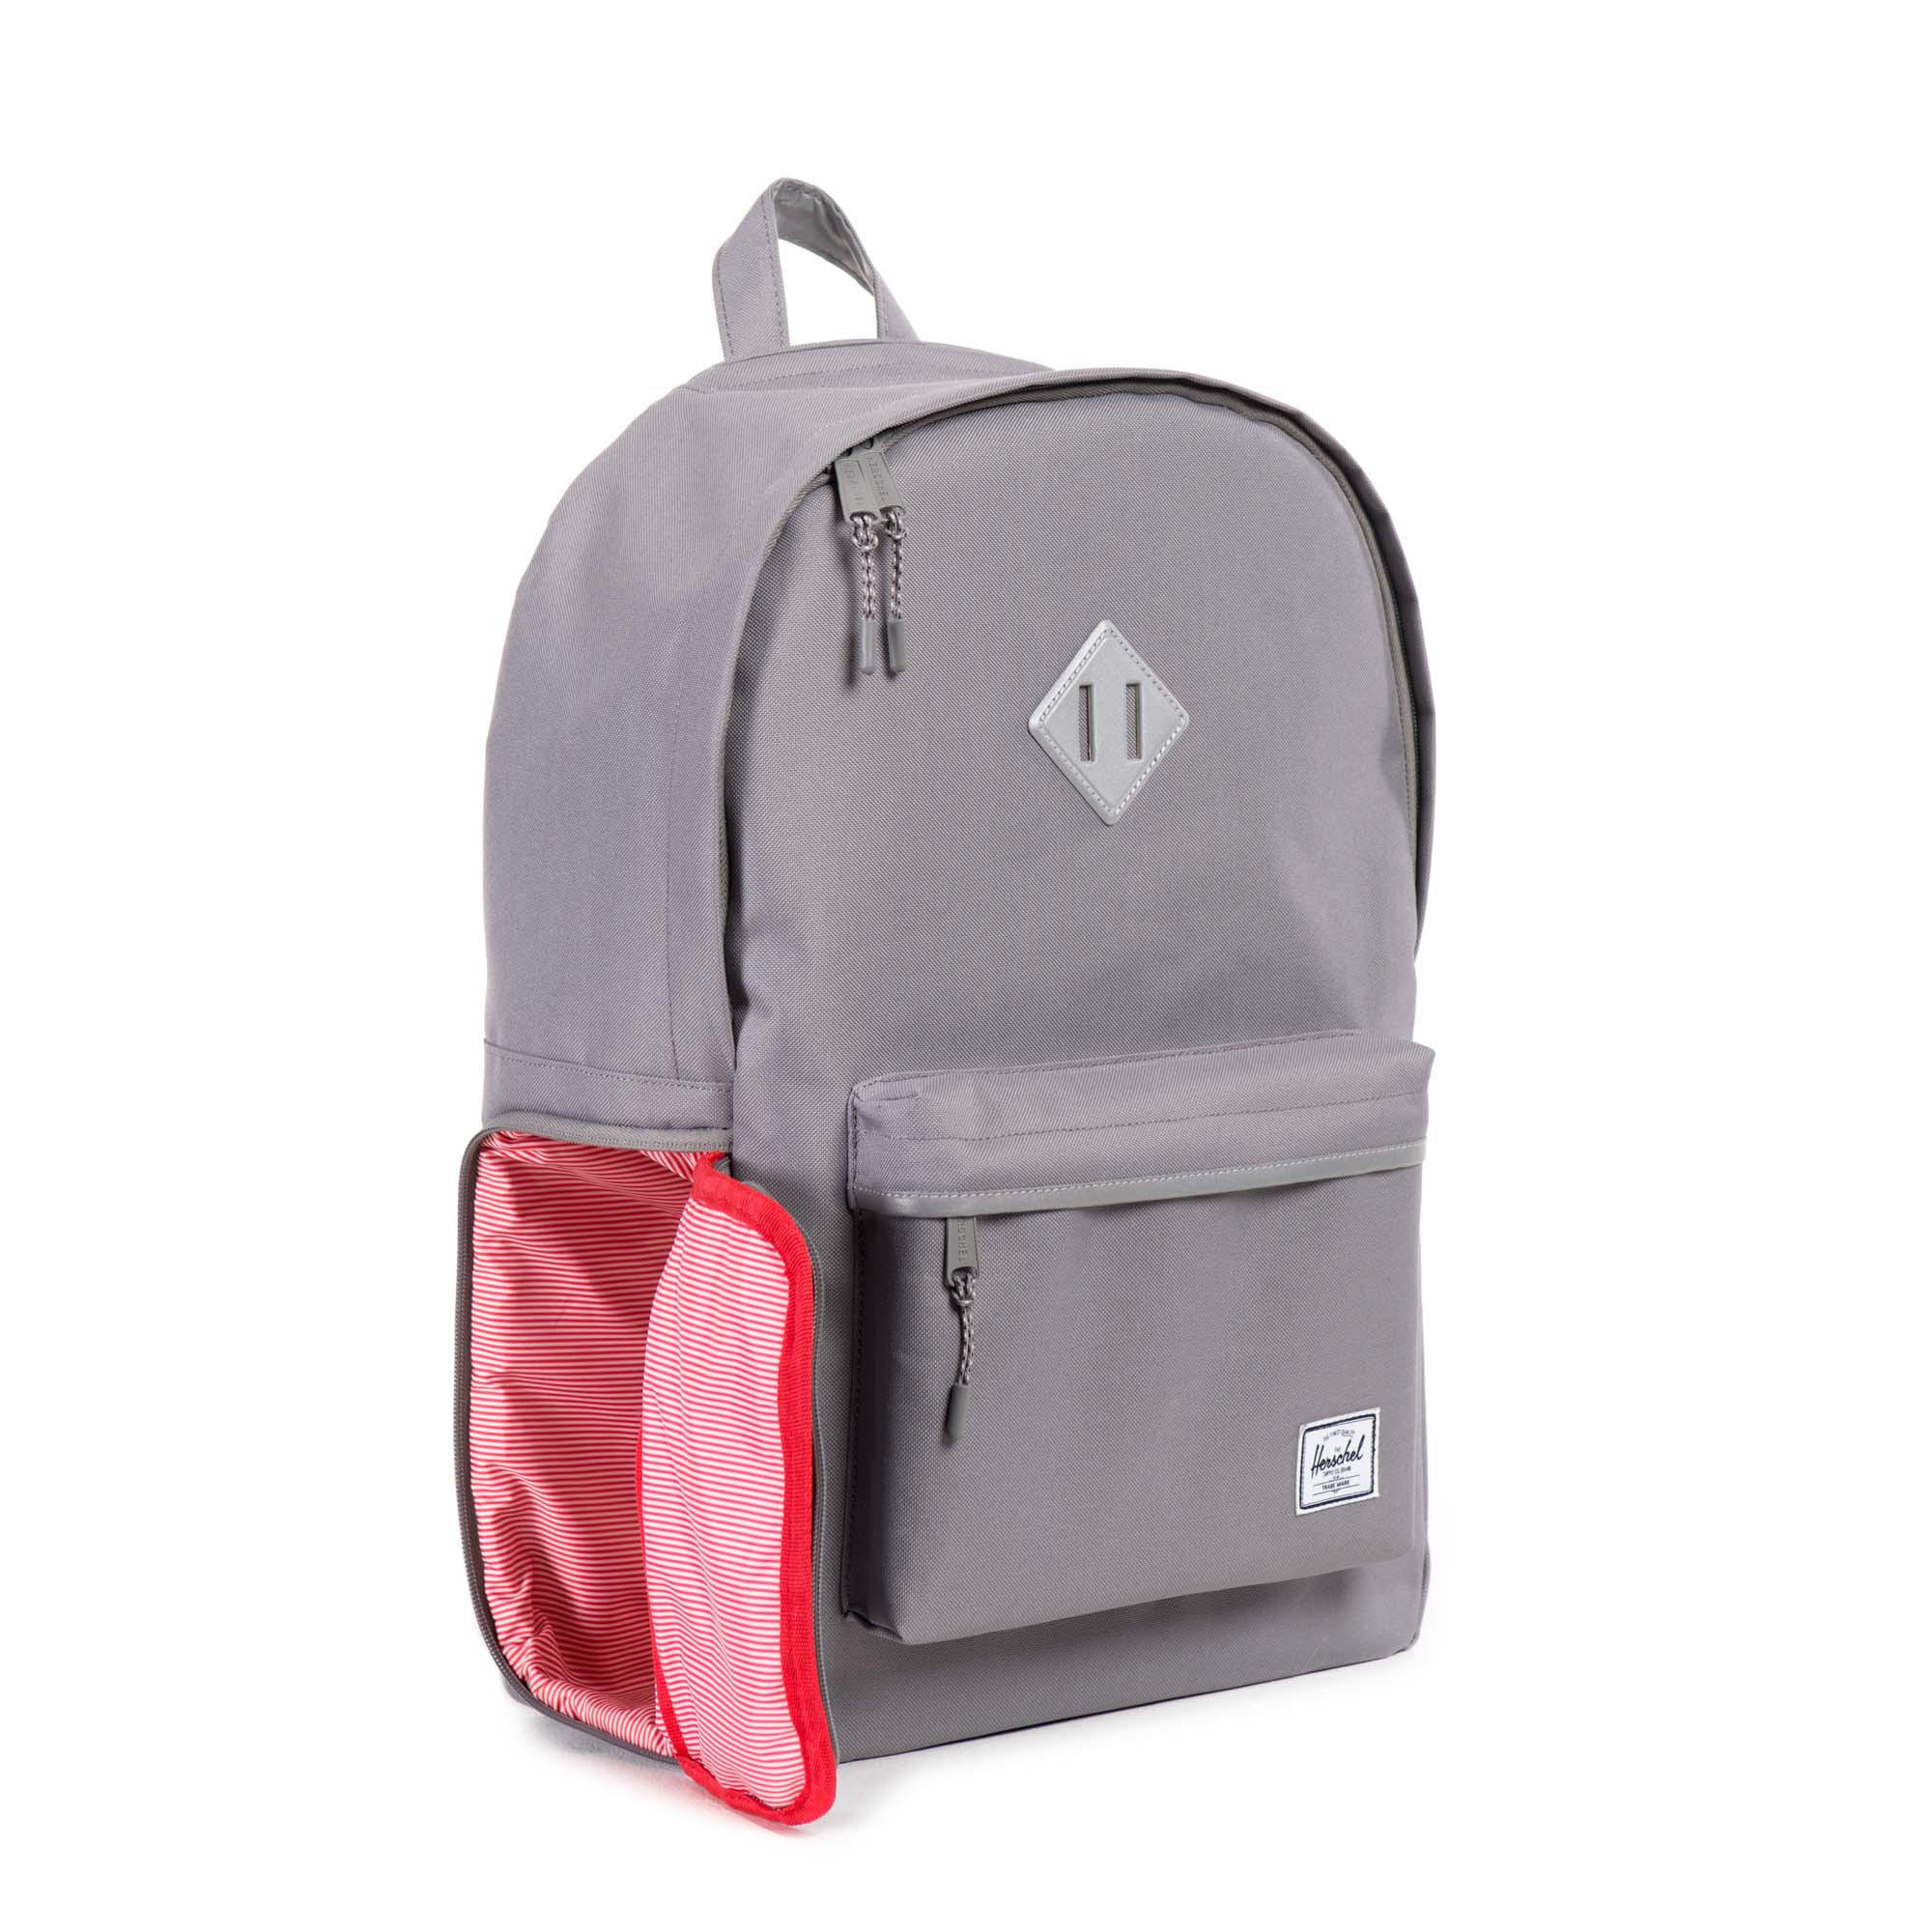 9f21eee467 Herschel Supply Co.  Heritage Backpack from Turntable Lab